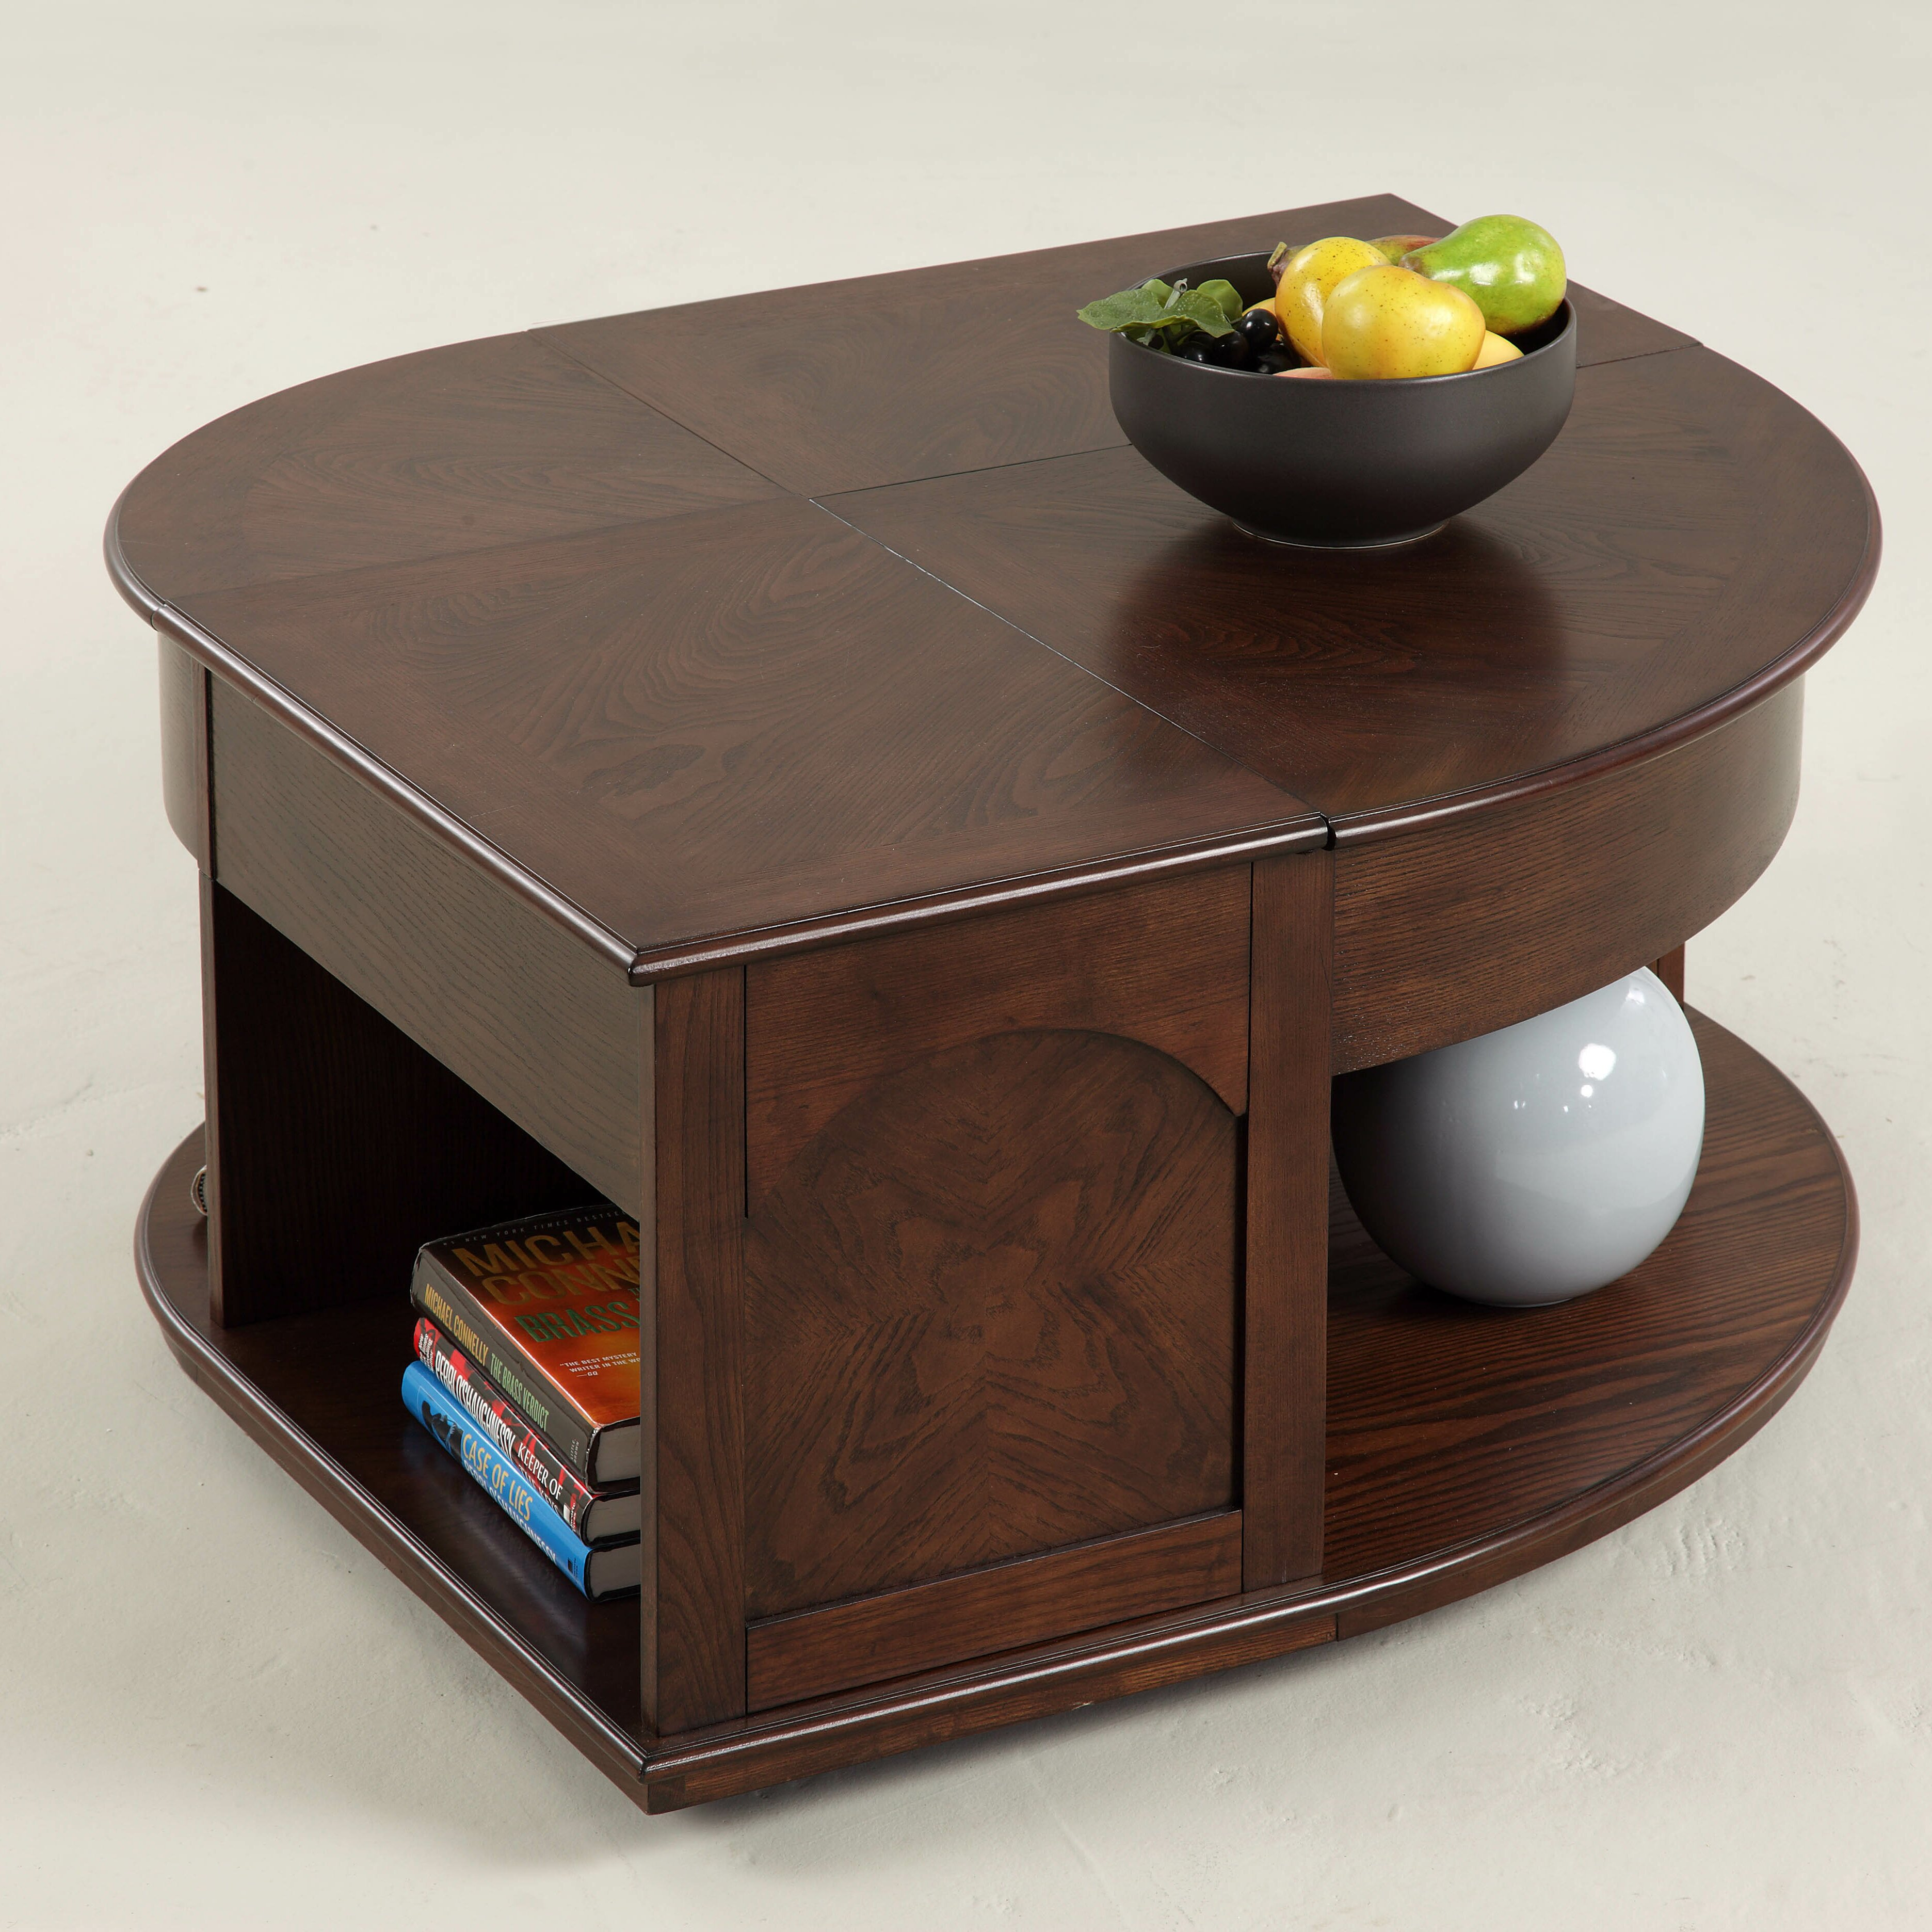 Industrial Style Lift Top Coffee Table: Darby Home Co Wilhoite Coffee Table With Double Lift Top